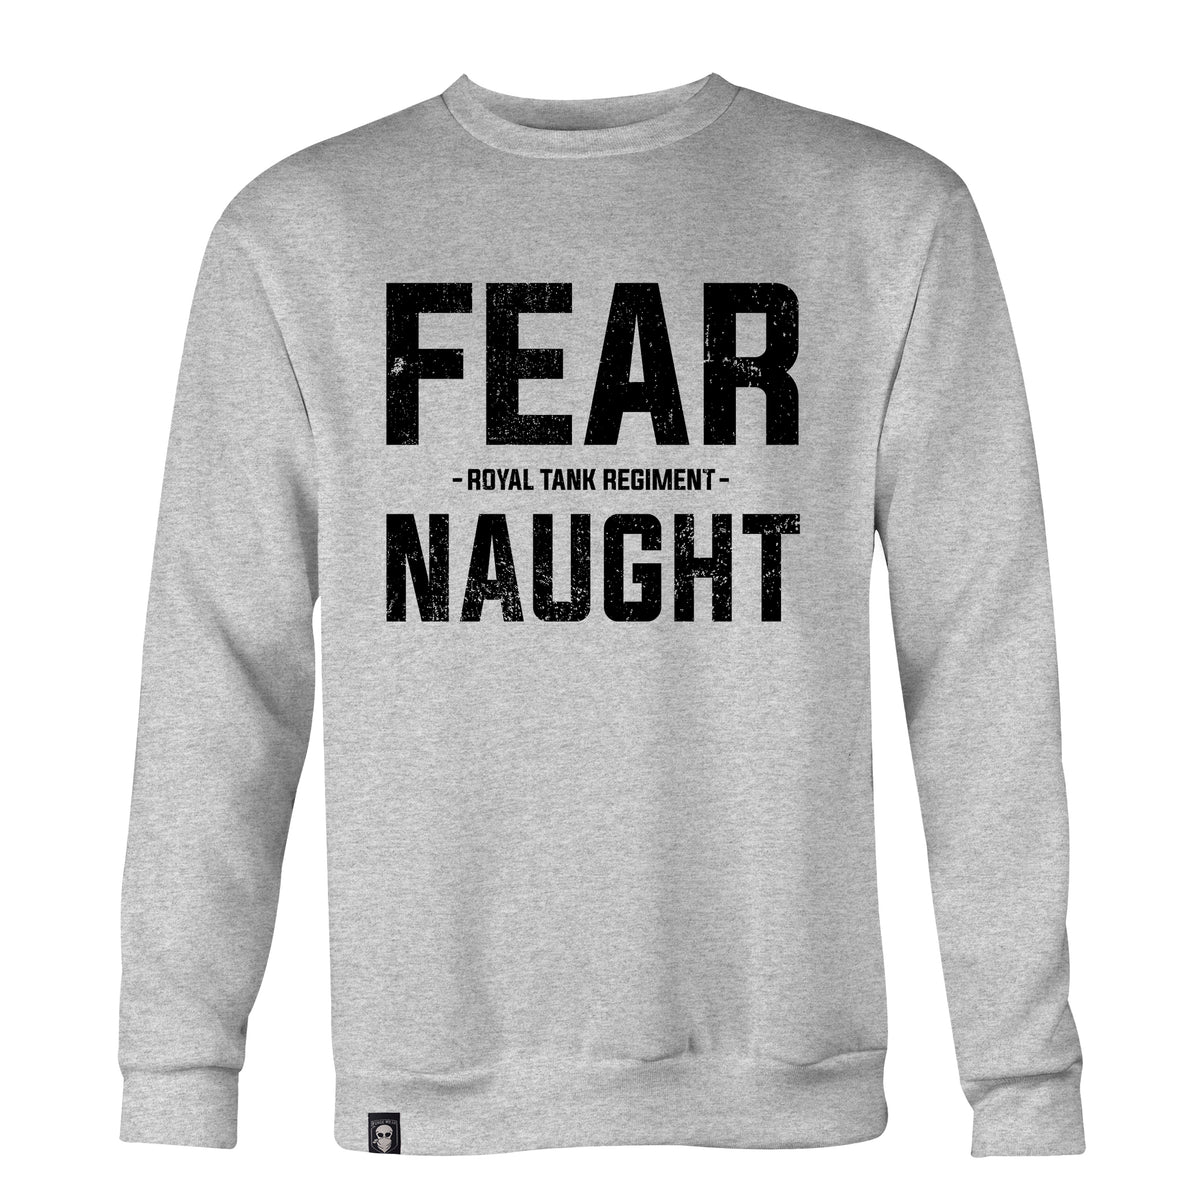 FEAR NAUGHT (ROYAL TANK REGIMENT MOTTO) SWEAT